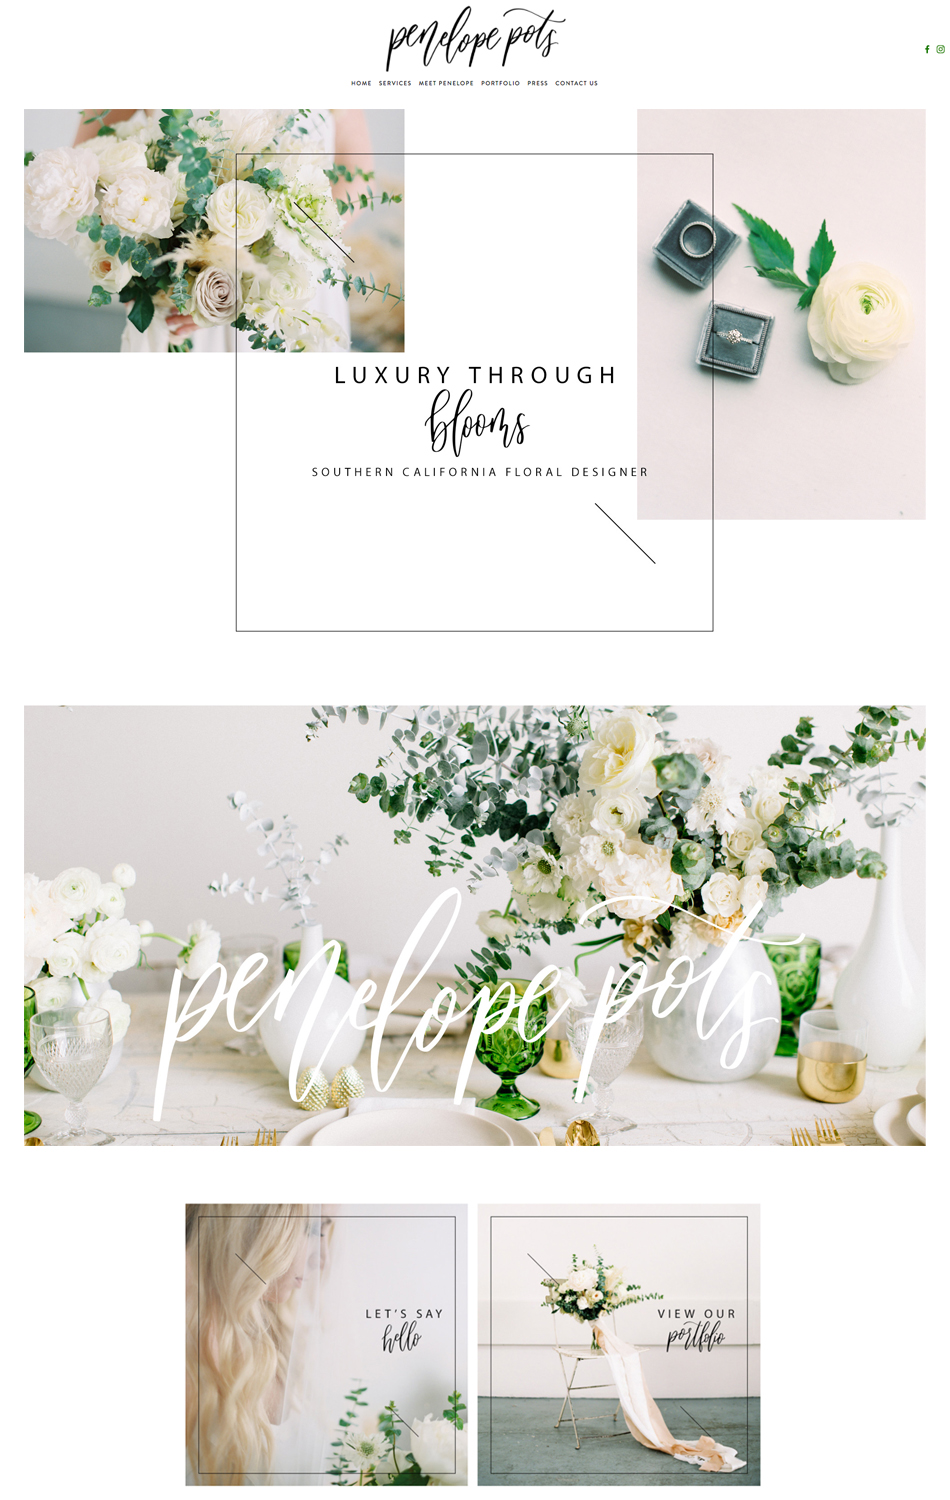 theeditorstouch.com | Squarespace Website Designer For Wedding Professionals and Business Creatives | The Editor's Touch